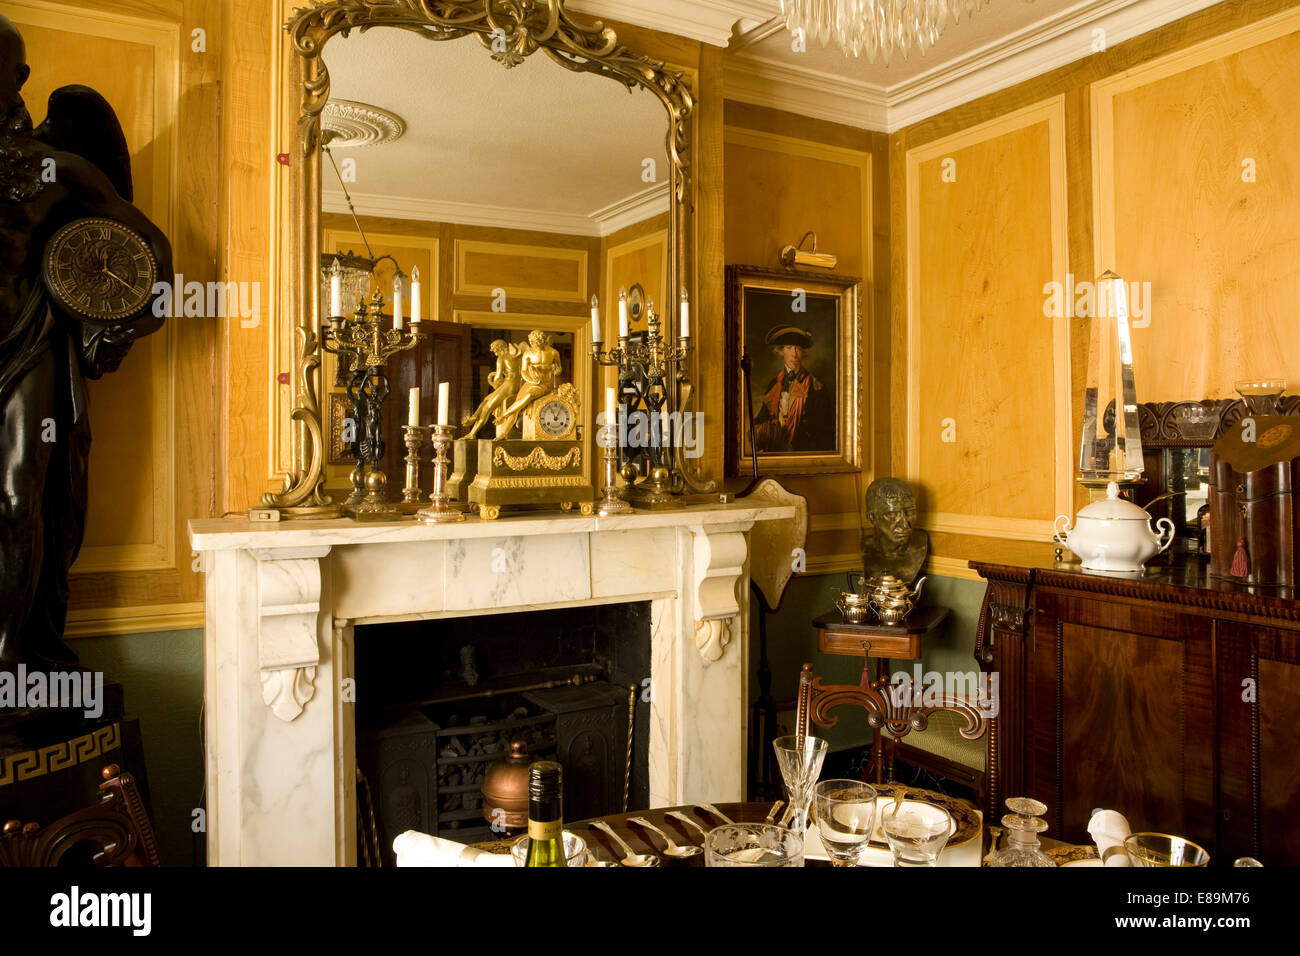 Ornate Mirror Above Fireplace In Traditional Country House Dining Room